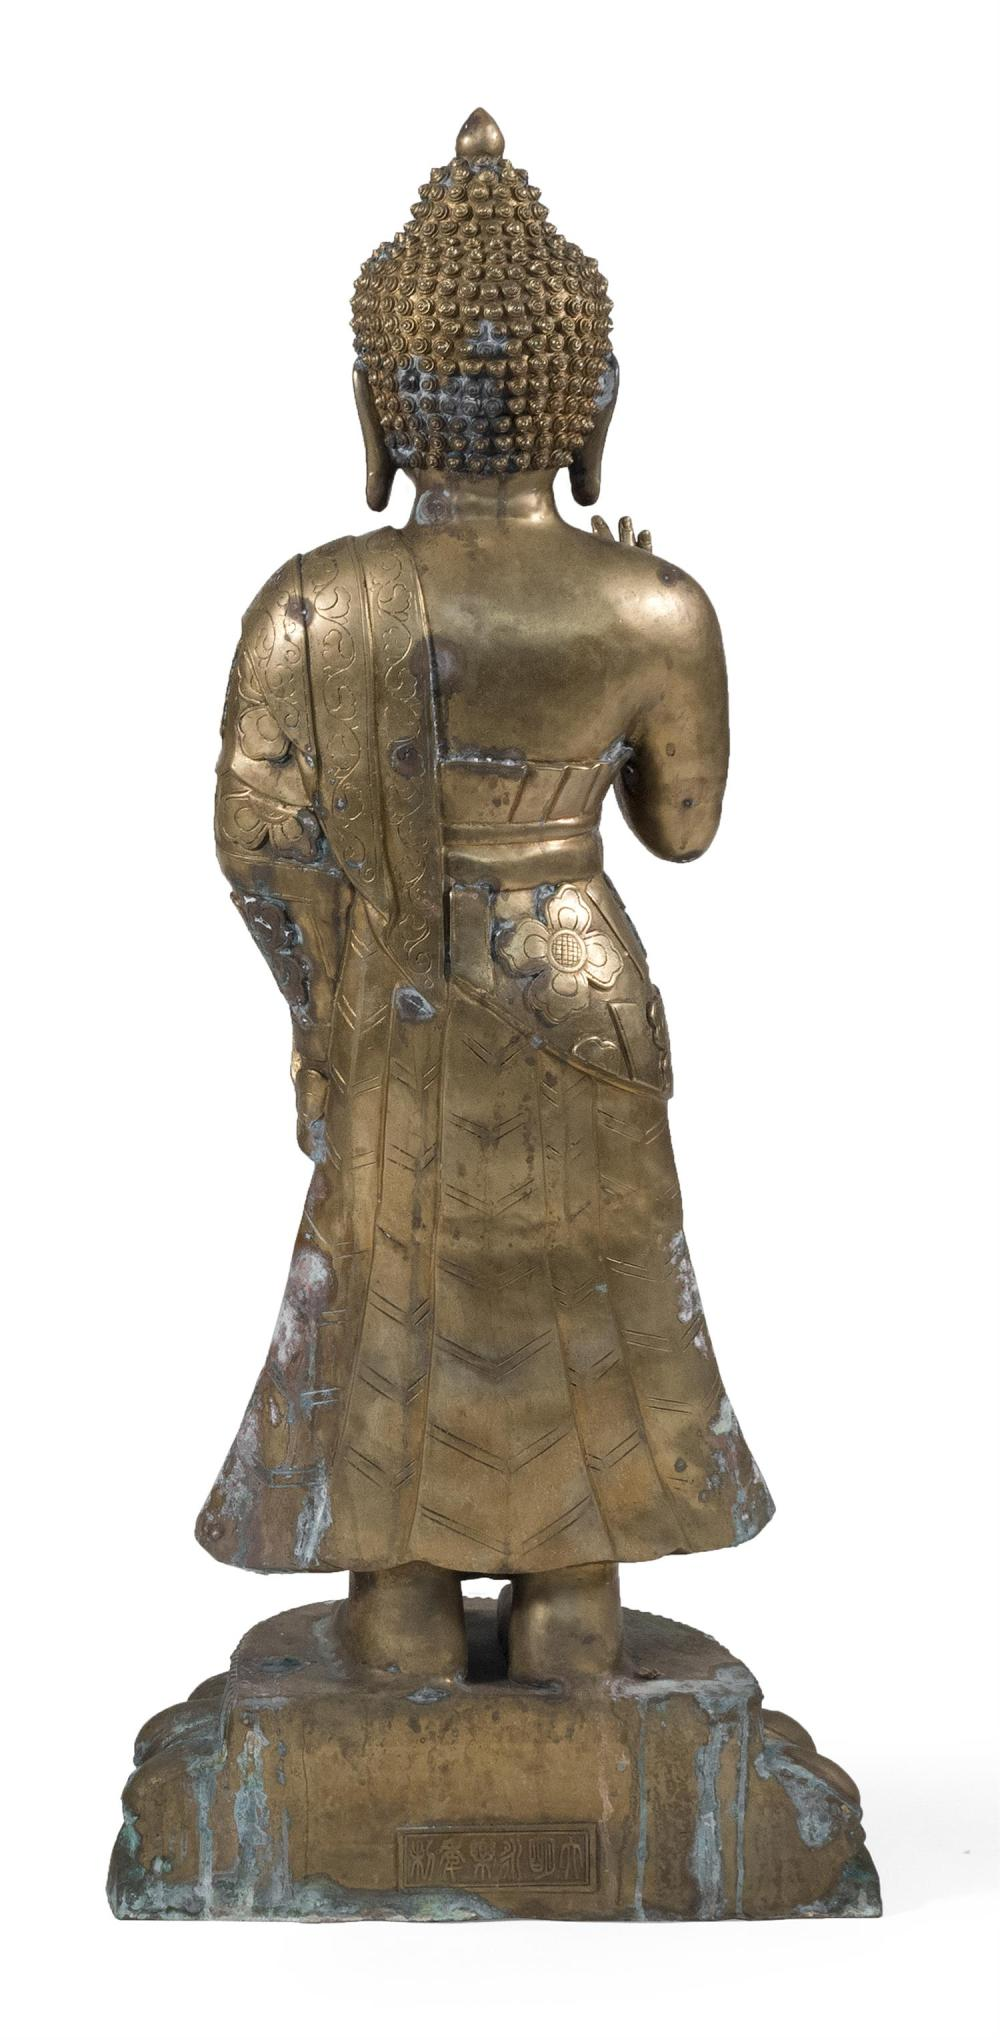 """Lot 976: CHINESE BRONZE FIGURE OF BUDDHA Standing and with a tightly curled top knot and flowing robes. Height 45.5""""."""